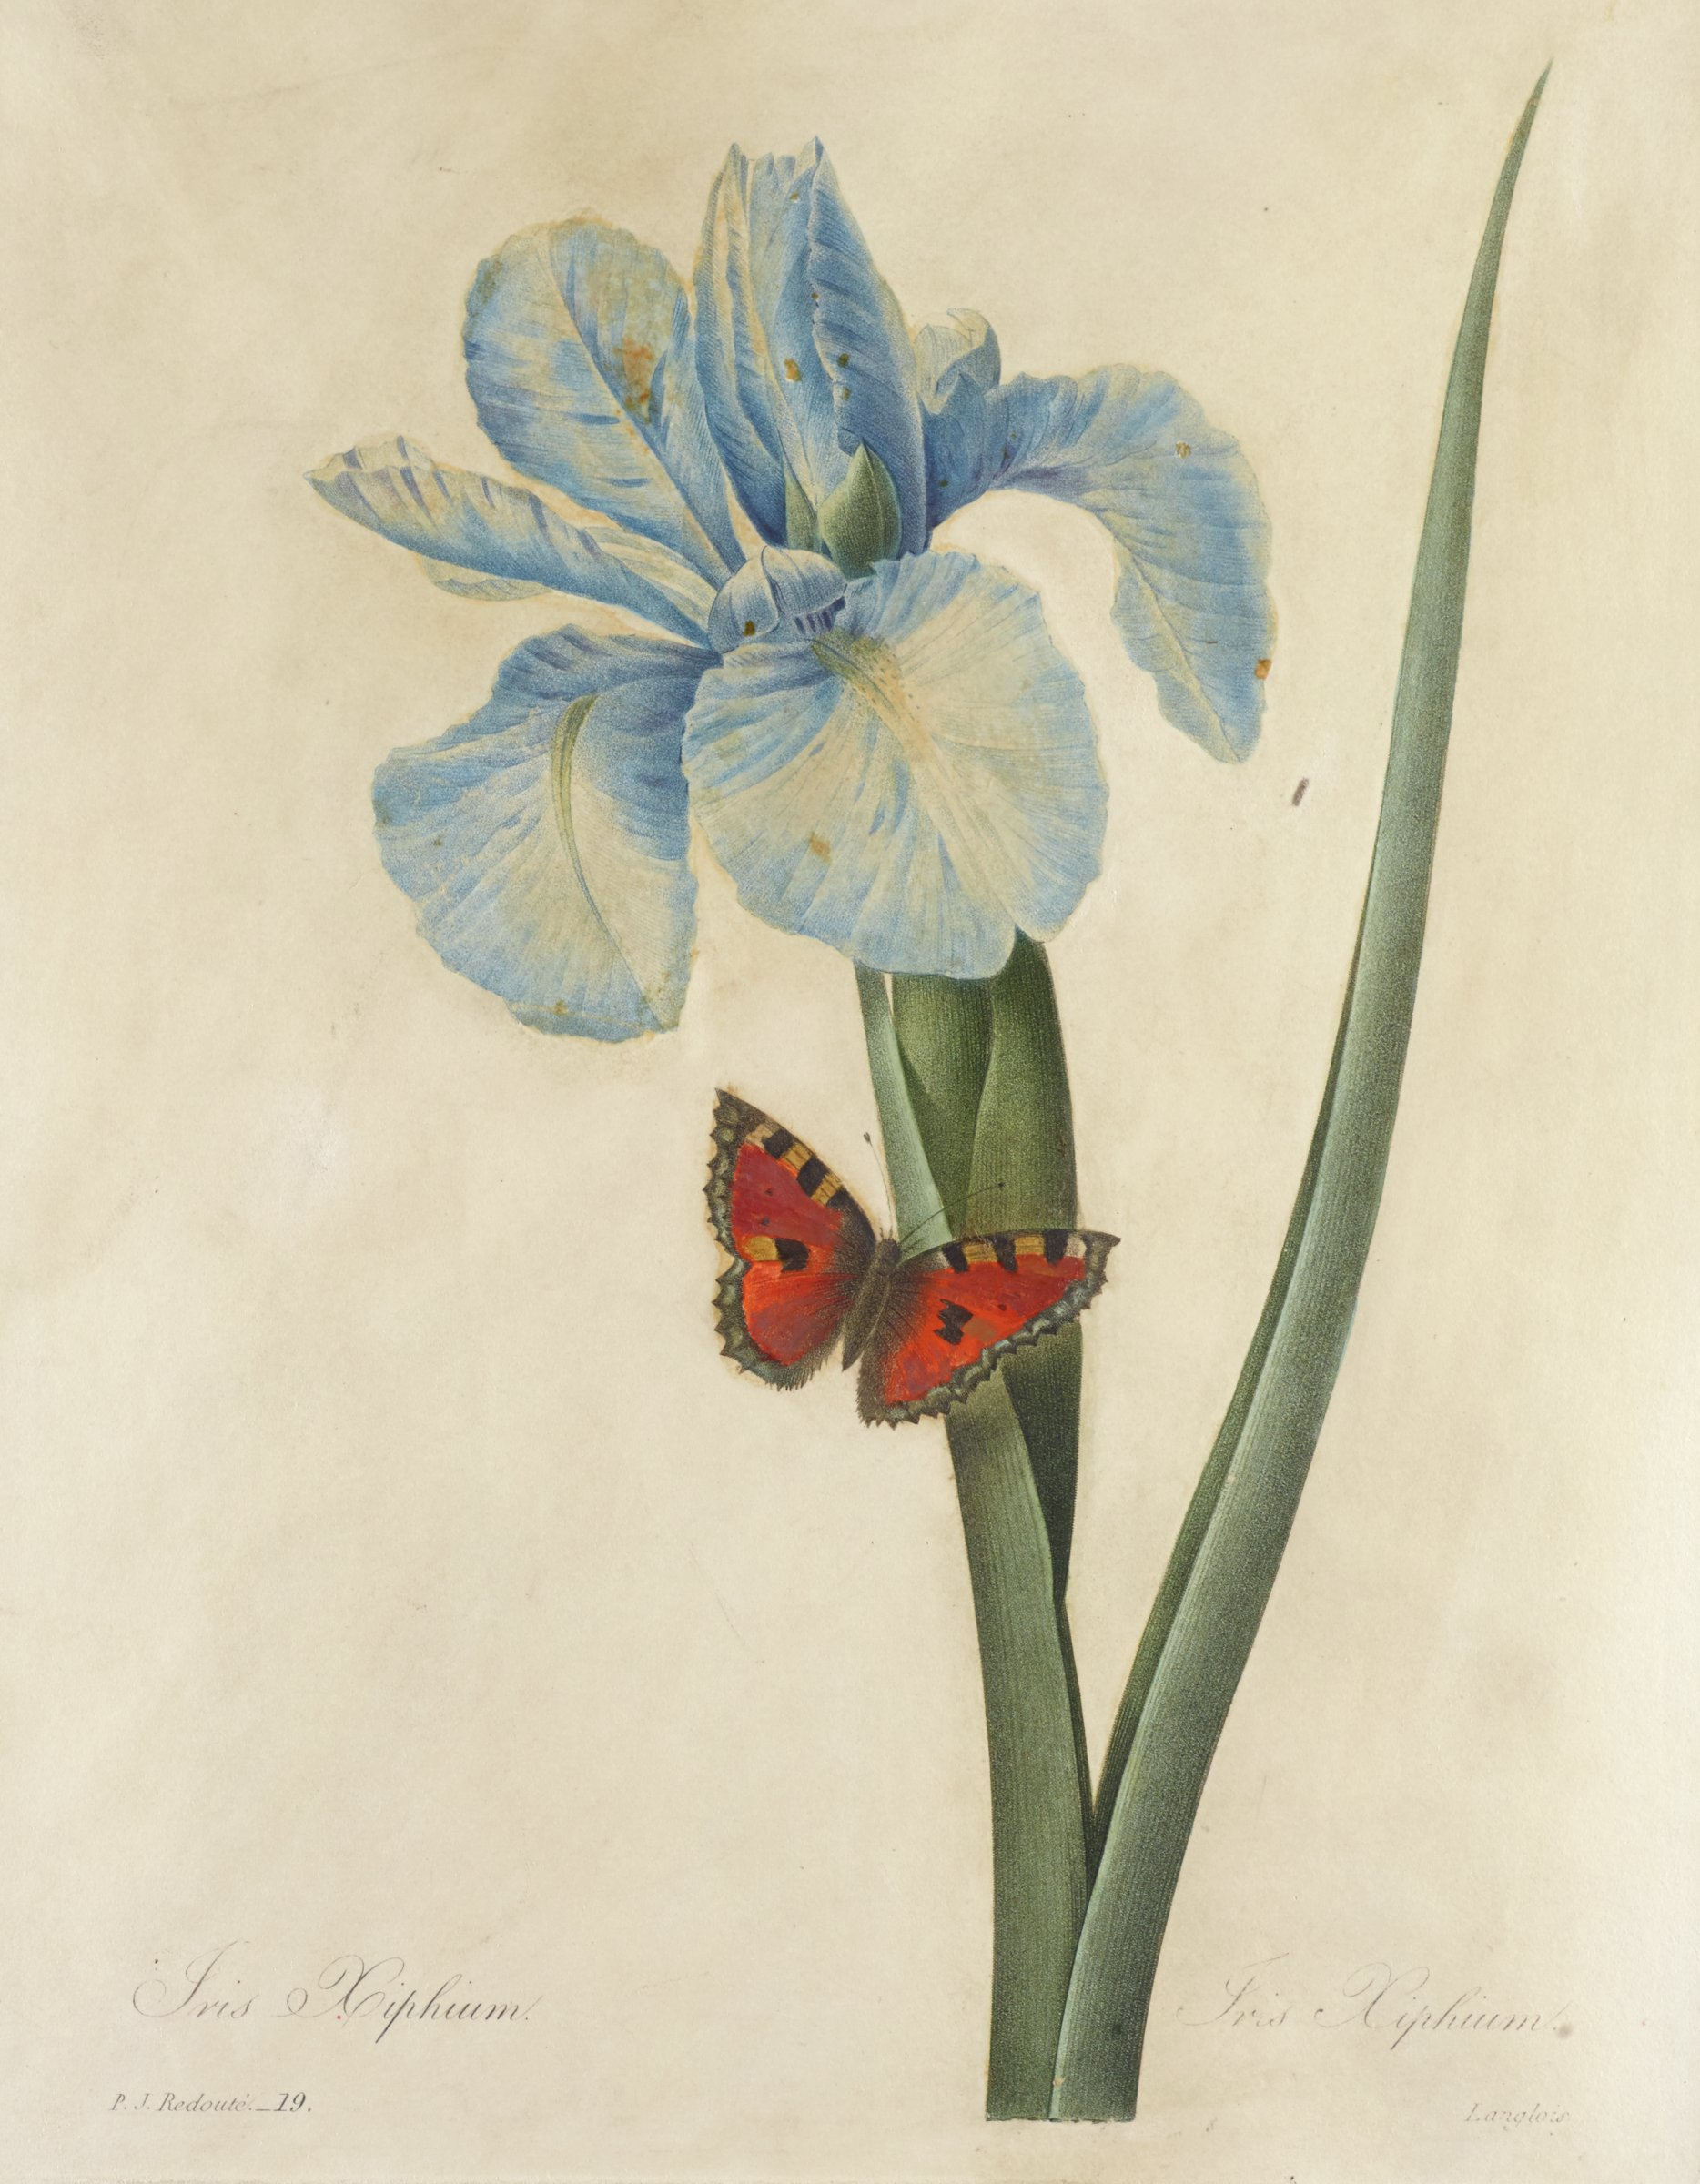 A botanical print depicting a single blue flower with two thick stems. A butterfly rests on the stem beneath the flower.